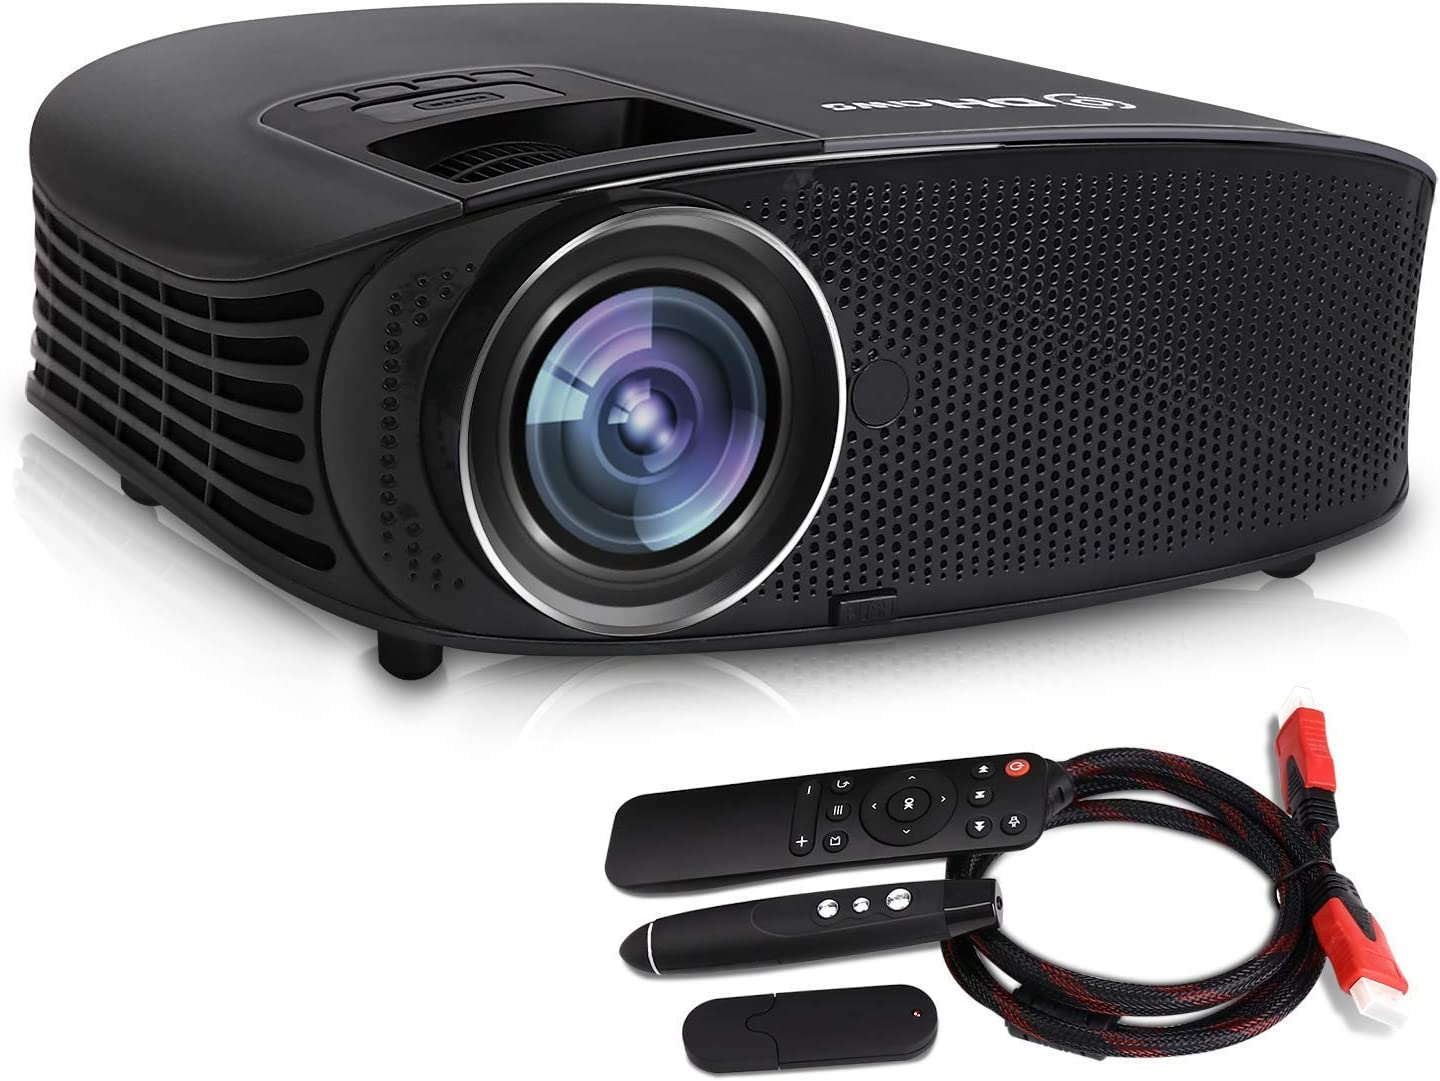 Video Projector,DHAWS 3800LM 1080P Full HD HDMI Office Projector for Laptop Business PowerPoint Presentation and Home Theater (with PPT clicker)